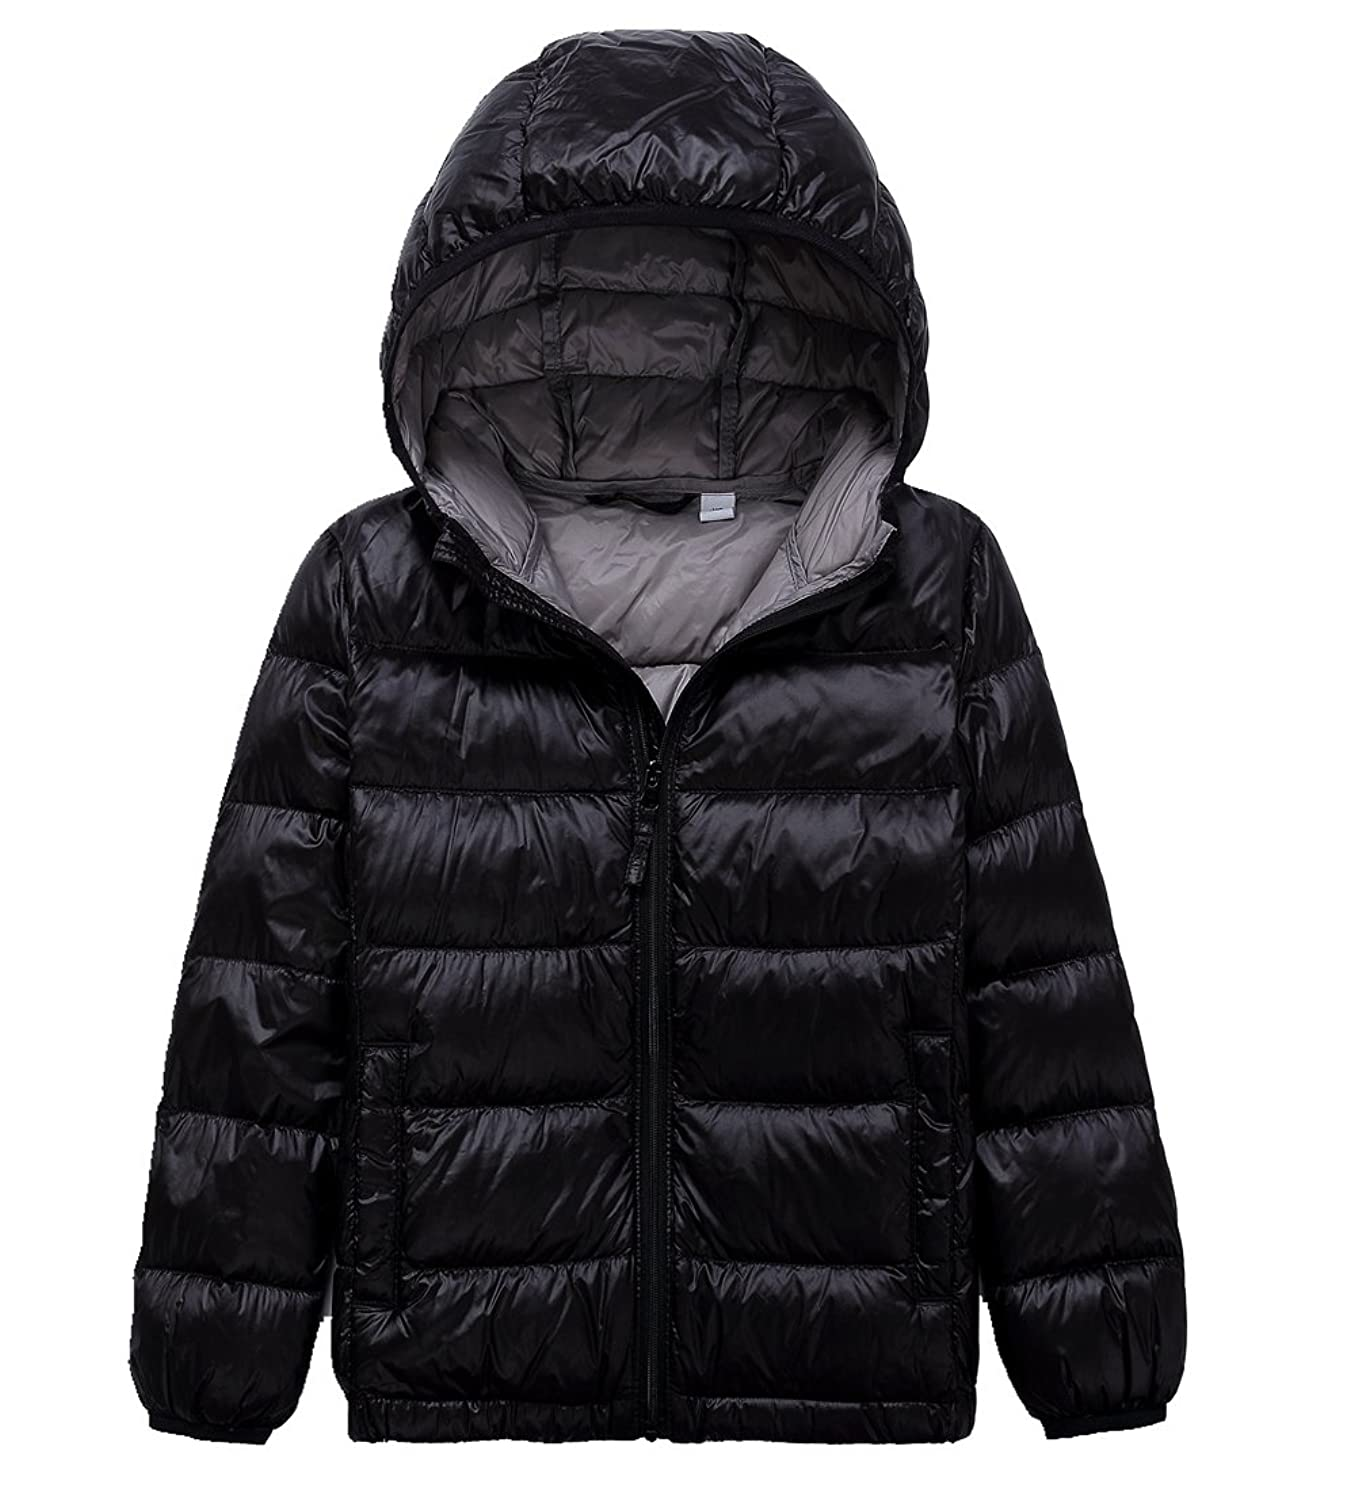 c7007642d15d Top 10 wholesale Black Puffer Down Jacket - Chinabrands.com